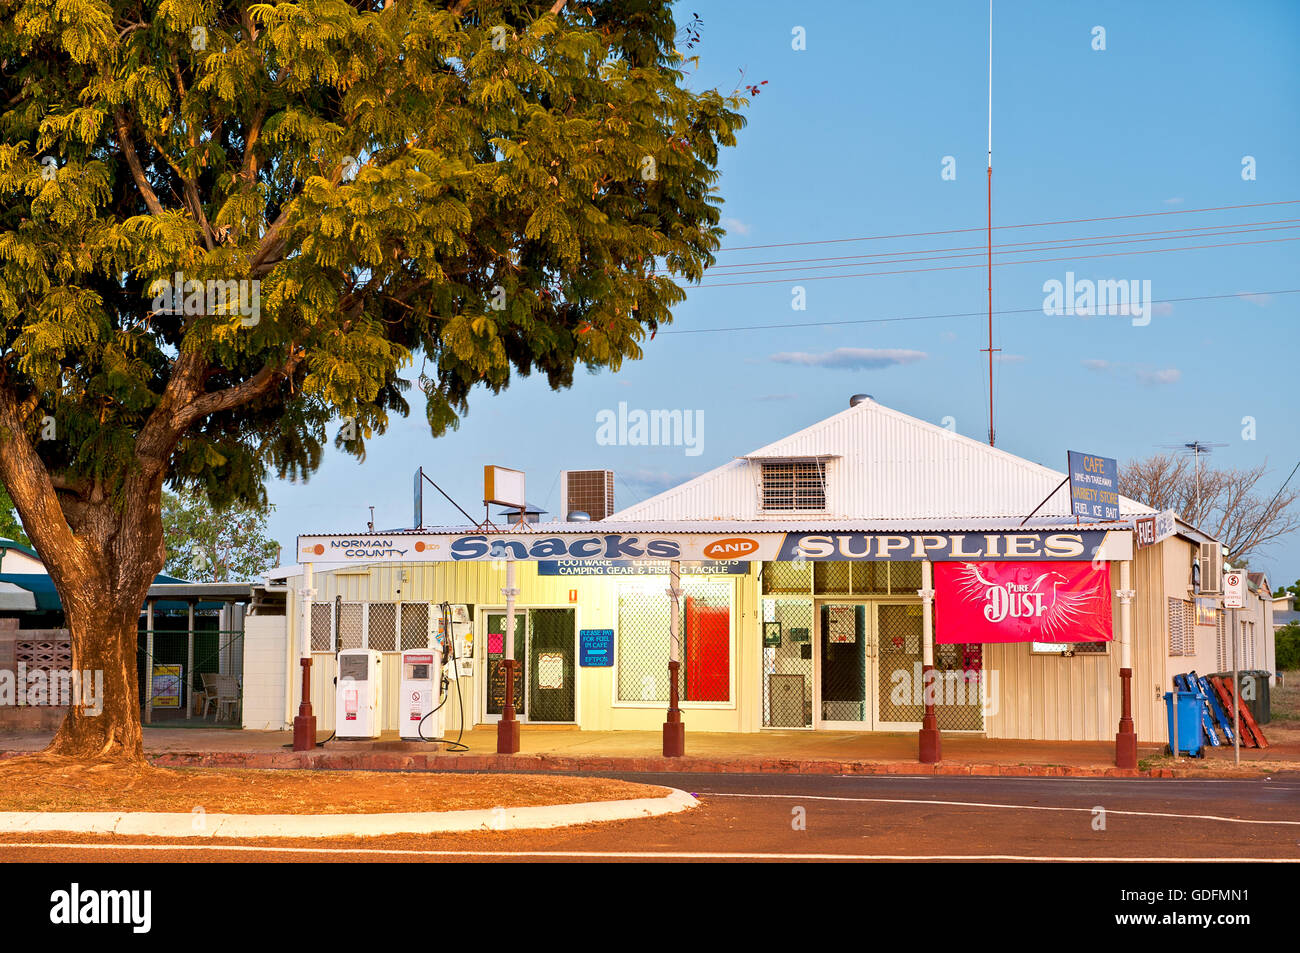 Variety Store in the outback town of Normanton. - Stock Image